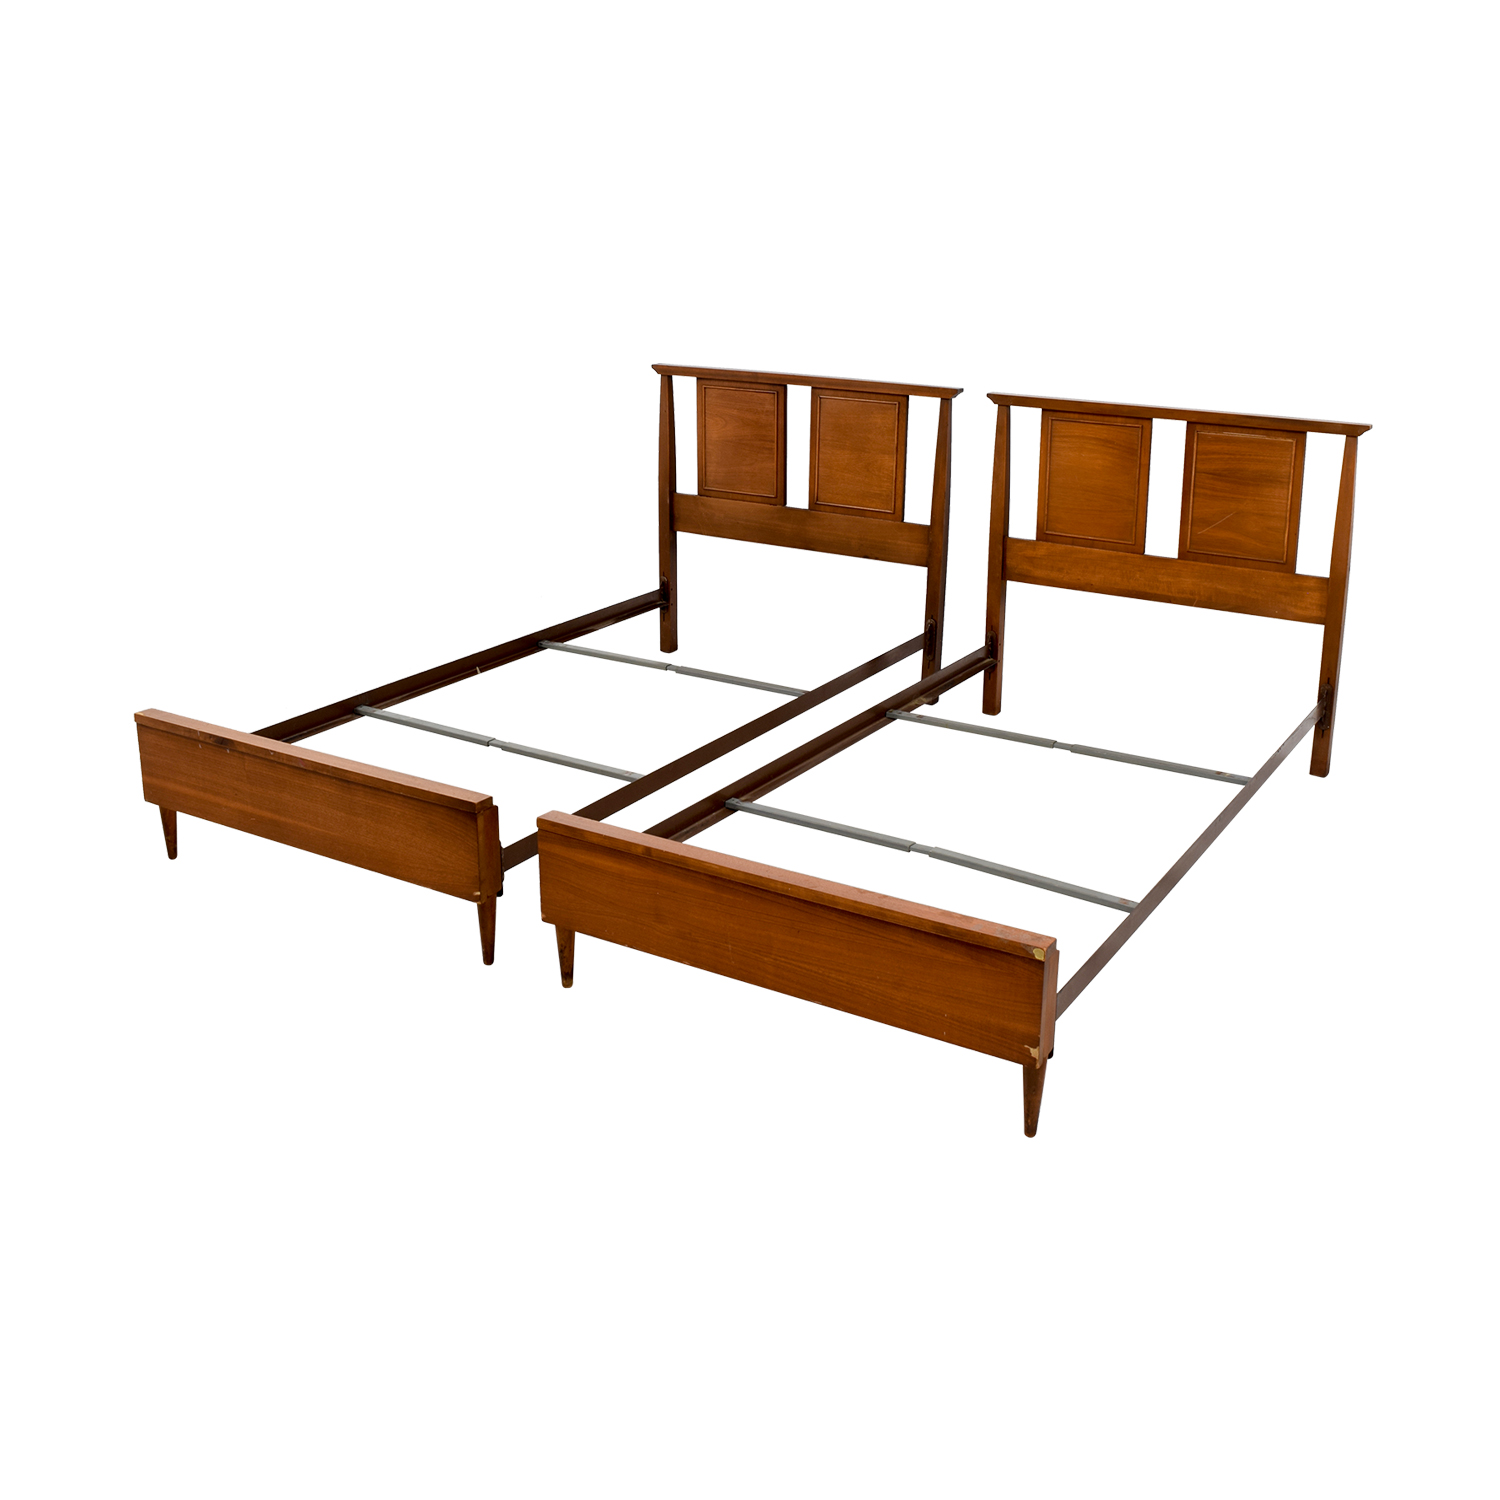 Seaman's Twin Bed Frames sale